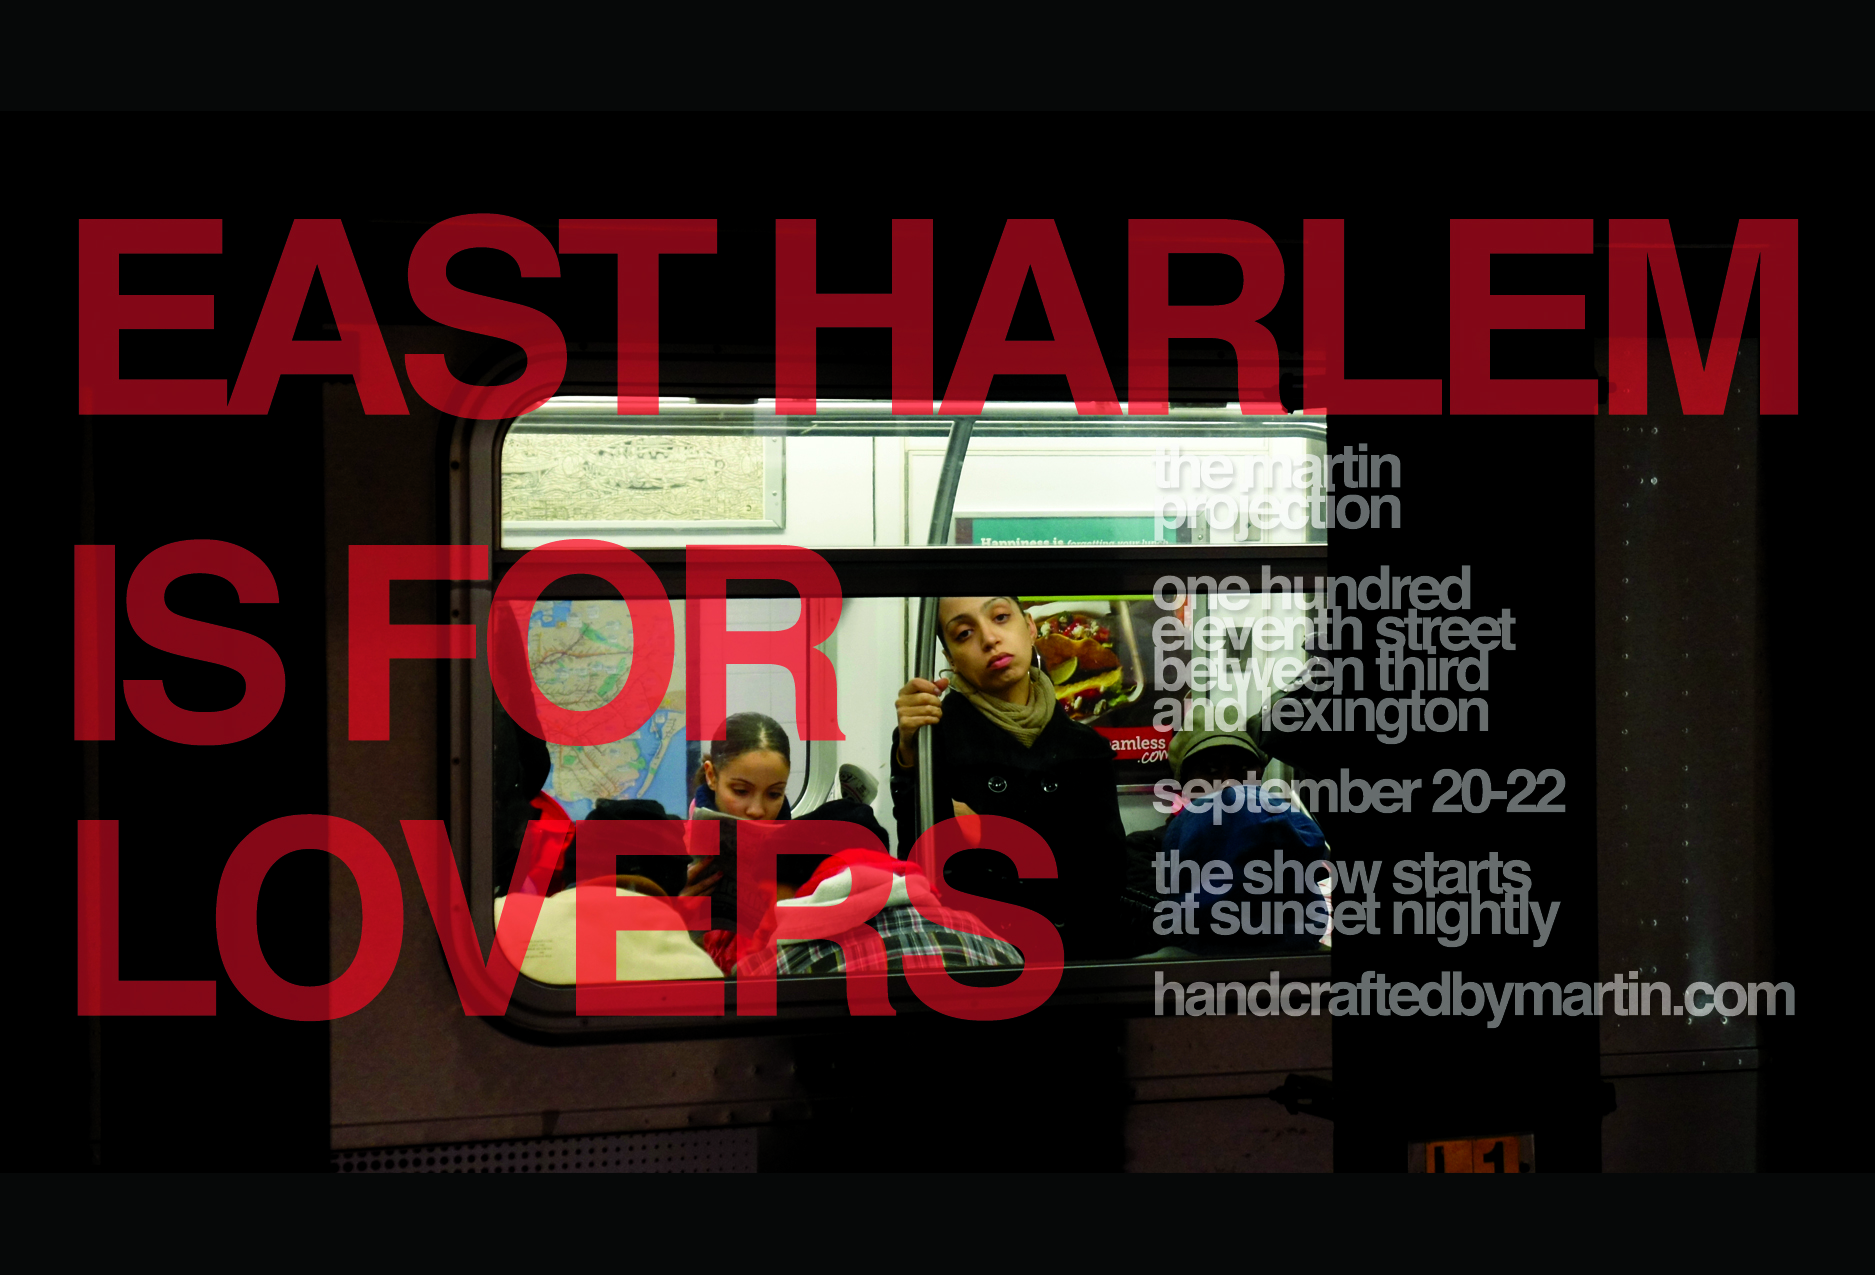 East Harlem Is For Lovers; the martin projection September 20 – 22